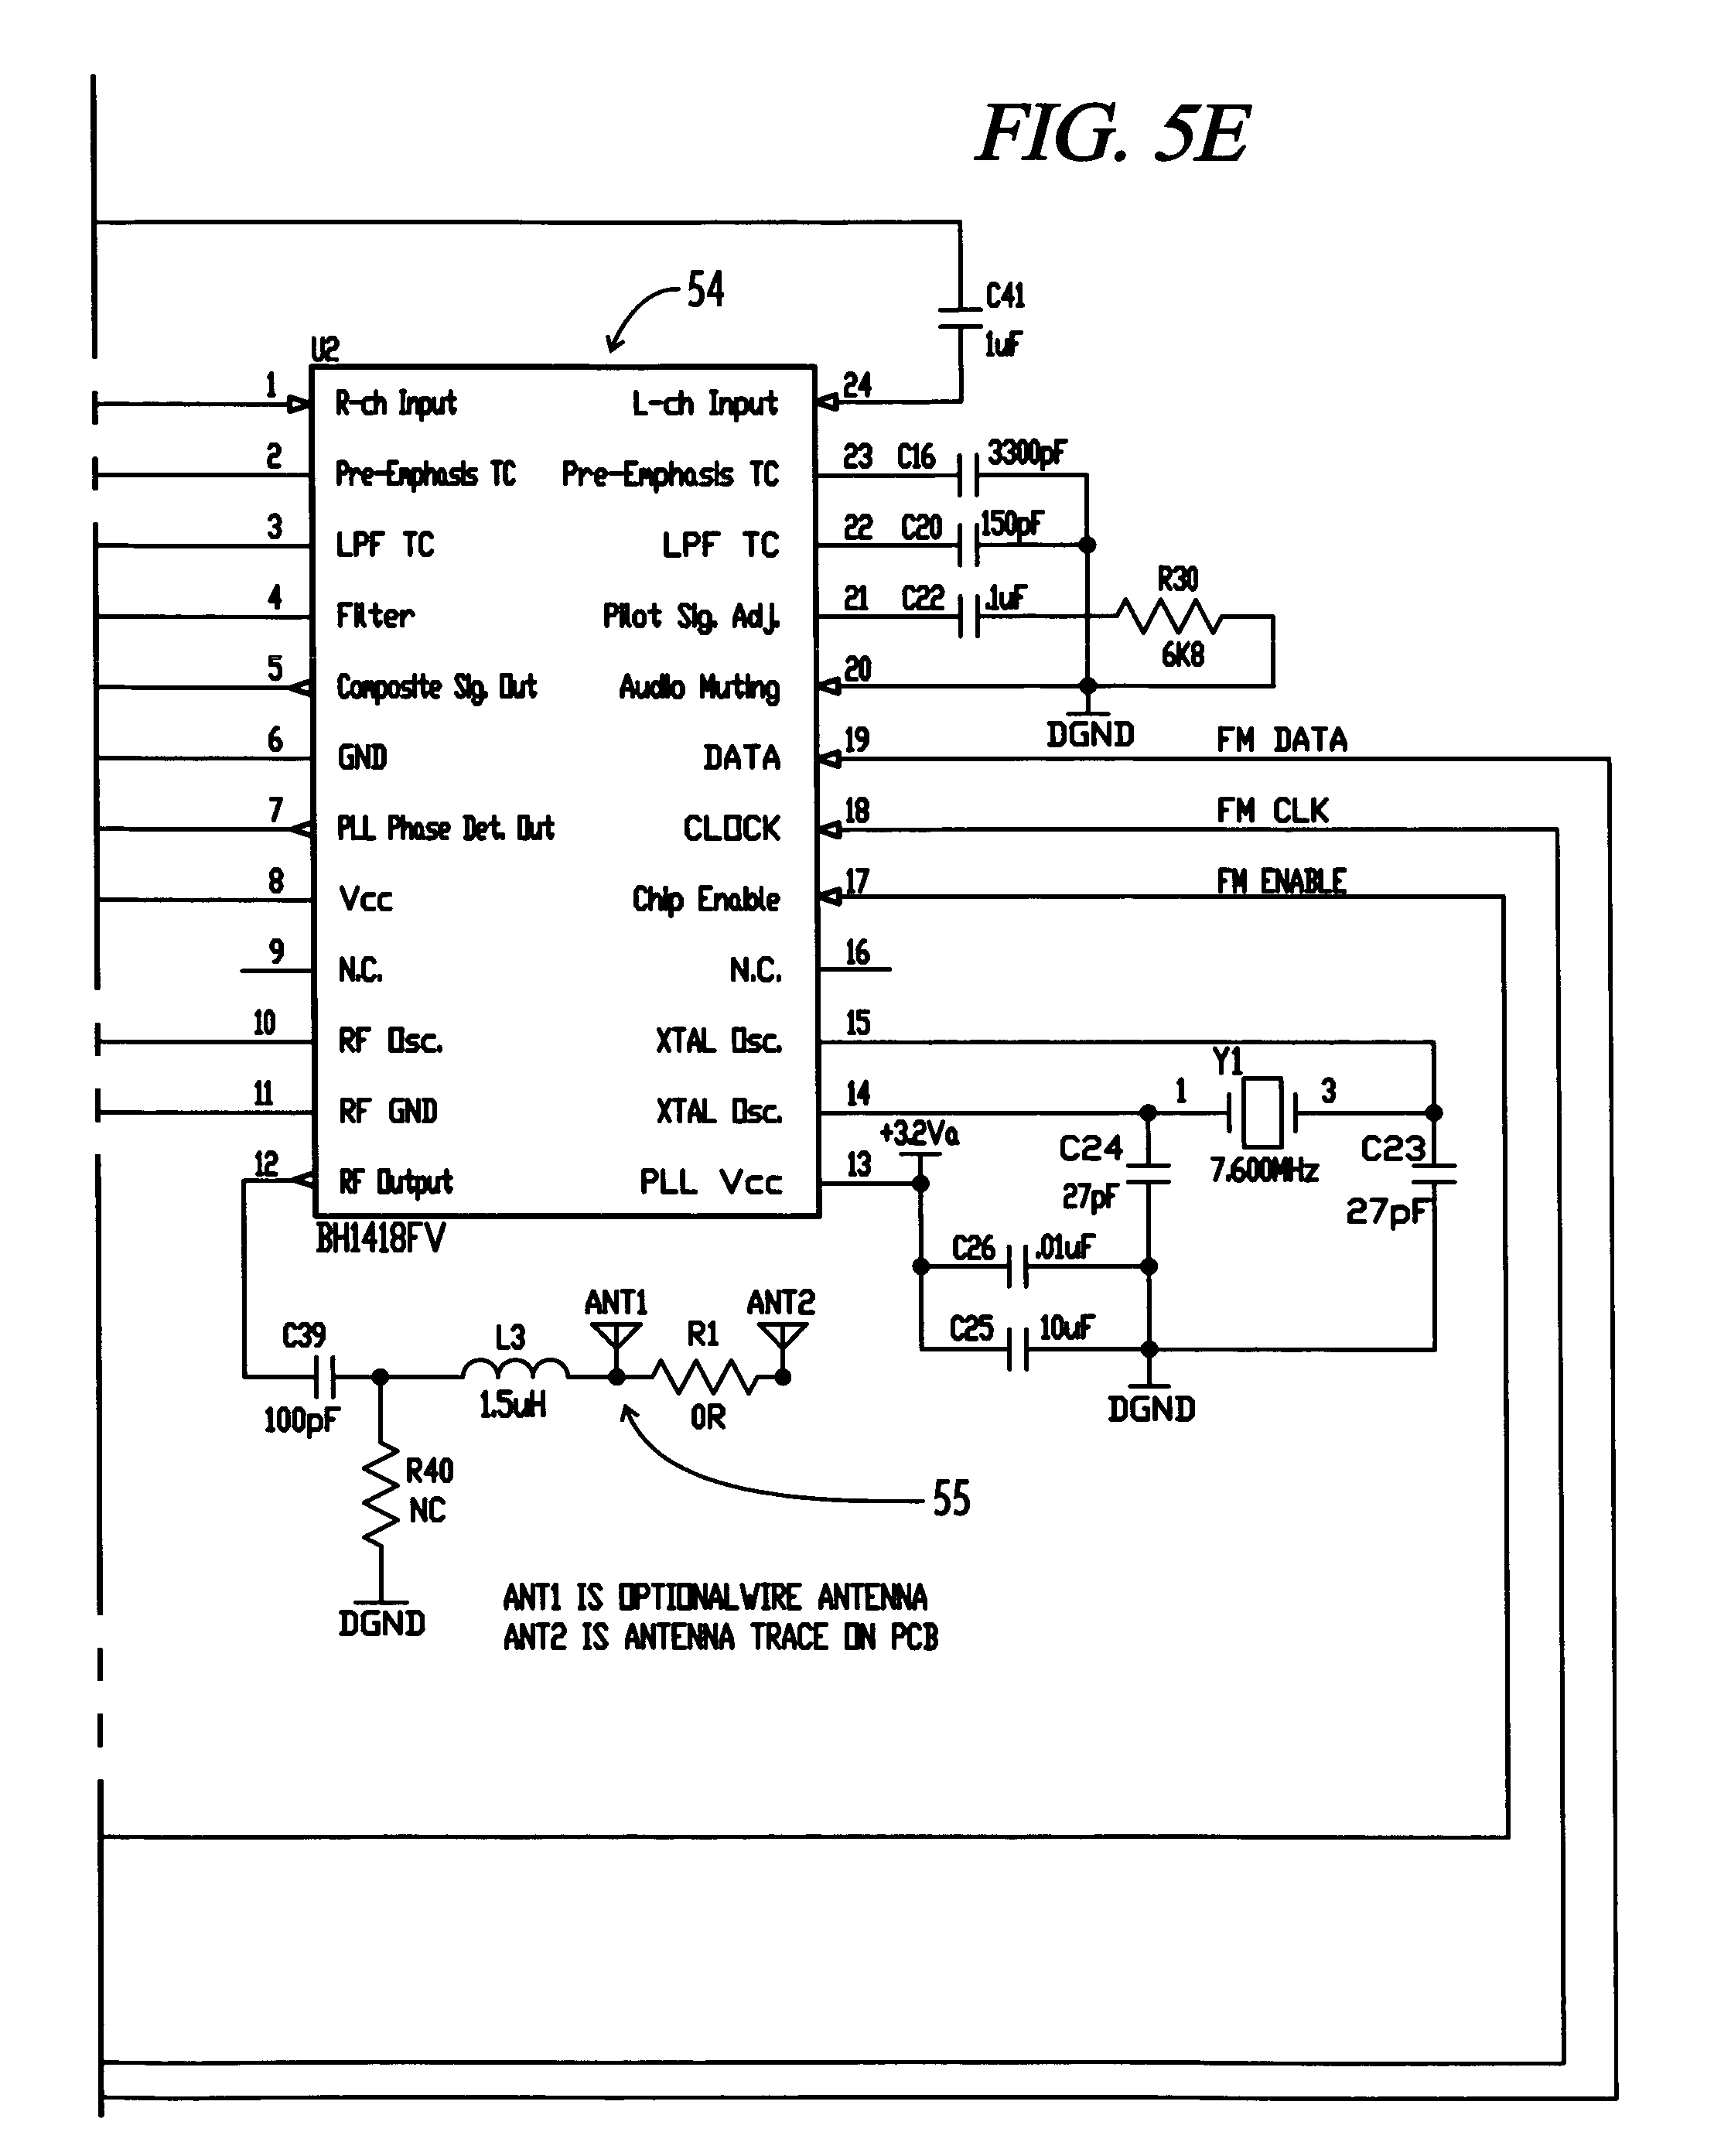 Griffin Itrip Schematics Switch Diagram Fmtransmittercircuitdiagrampng Wiring Circuit Symbols U2022 Rh Armkandy Co Auto Mobile Ipod